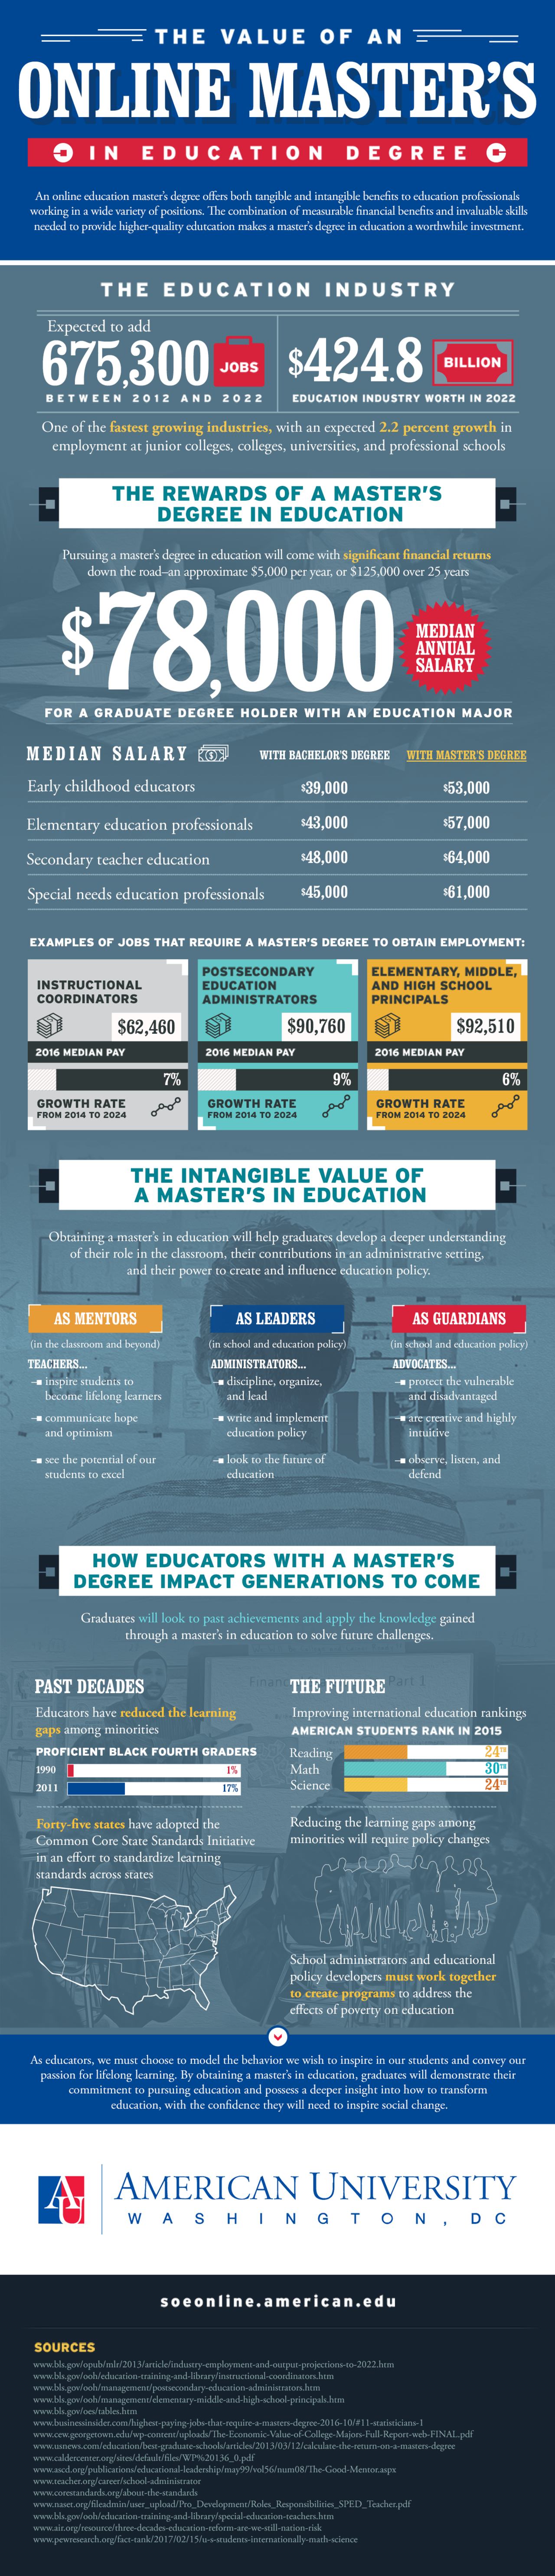 infographic representing the value of an online masters in education degree